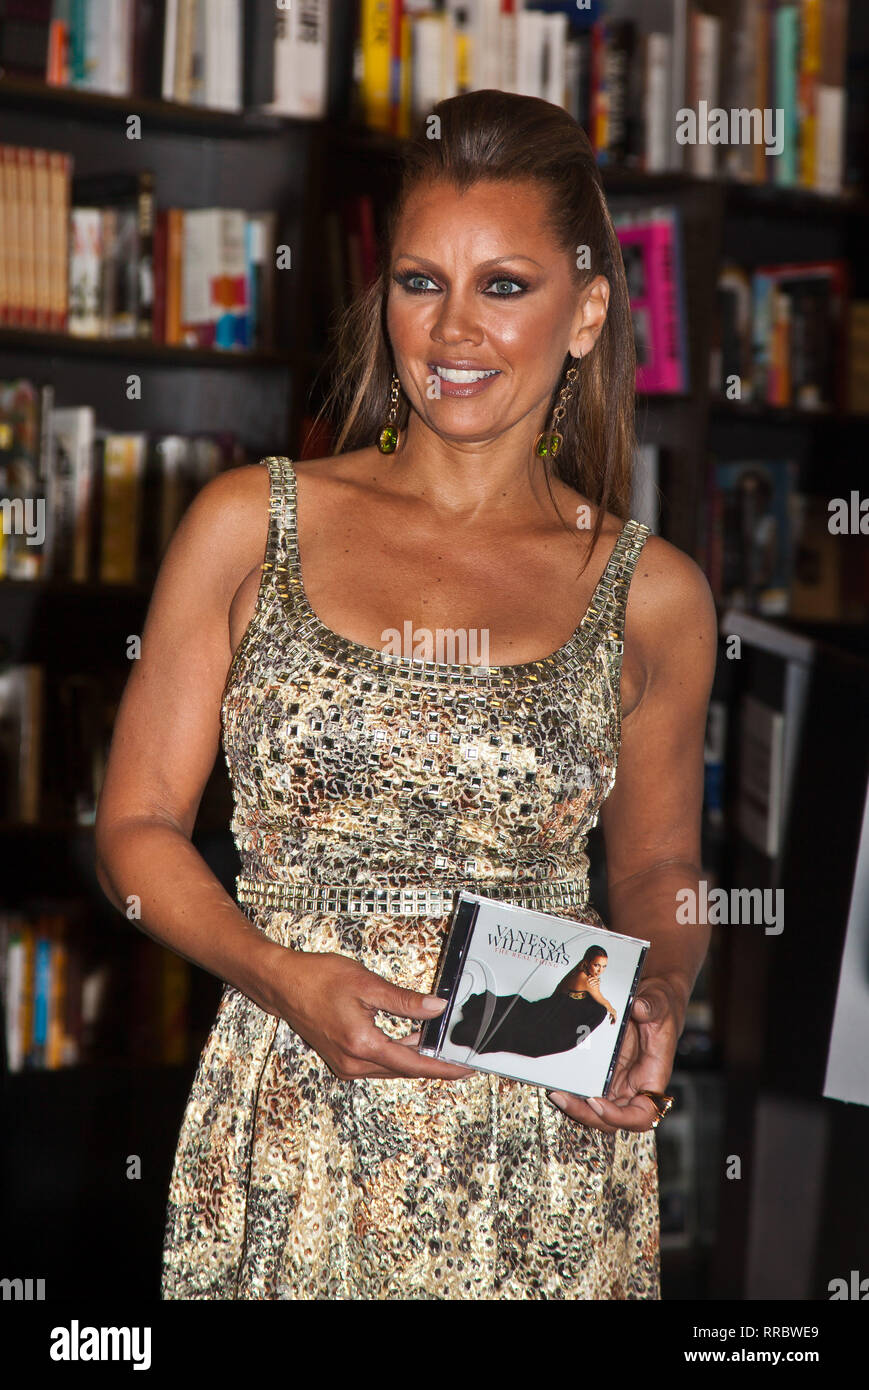 NEW YORK, NY - June 02:  Singer Vanessa Williams introduce new CD The Real Things at Borders, New York on June 2, 2009 in New York City - Stock Image